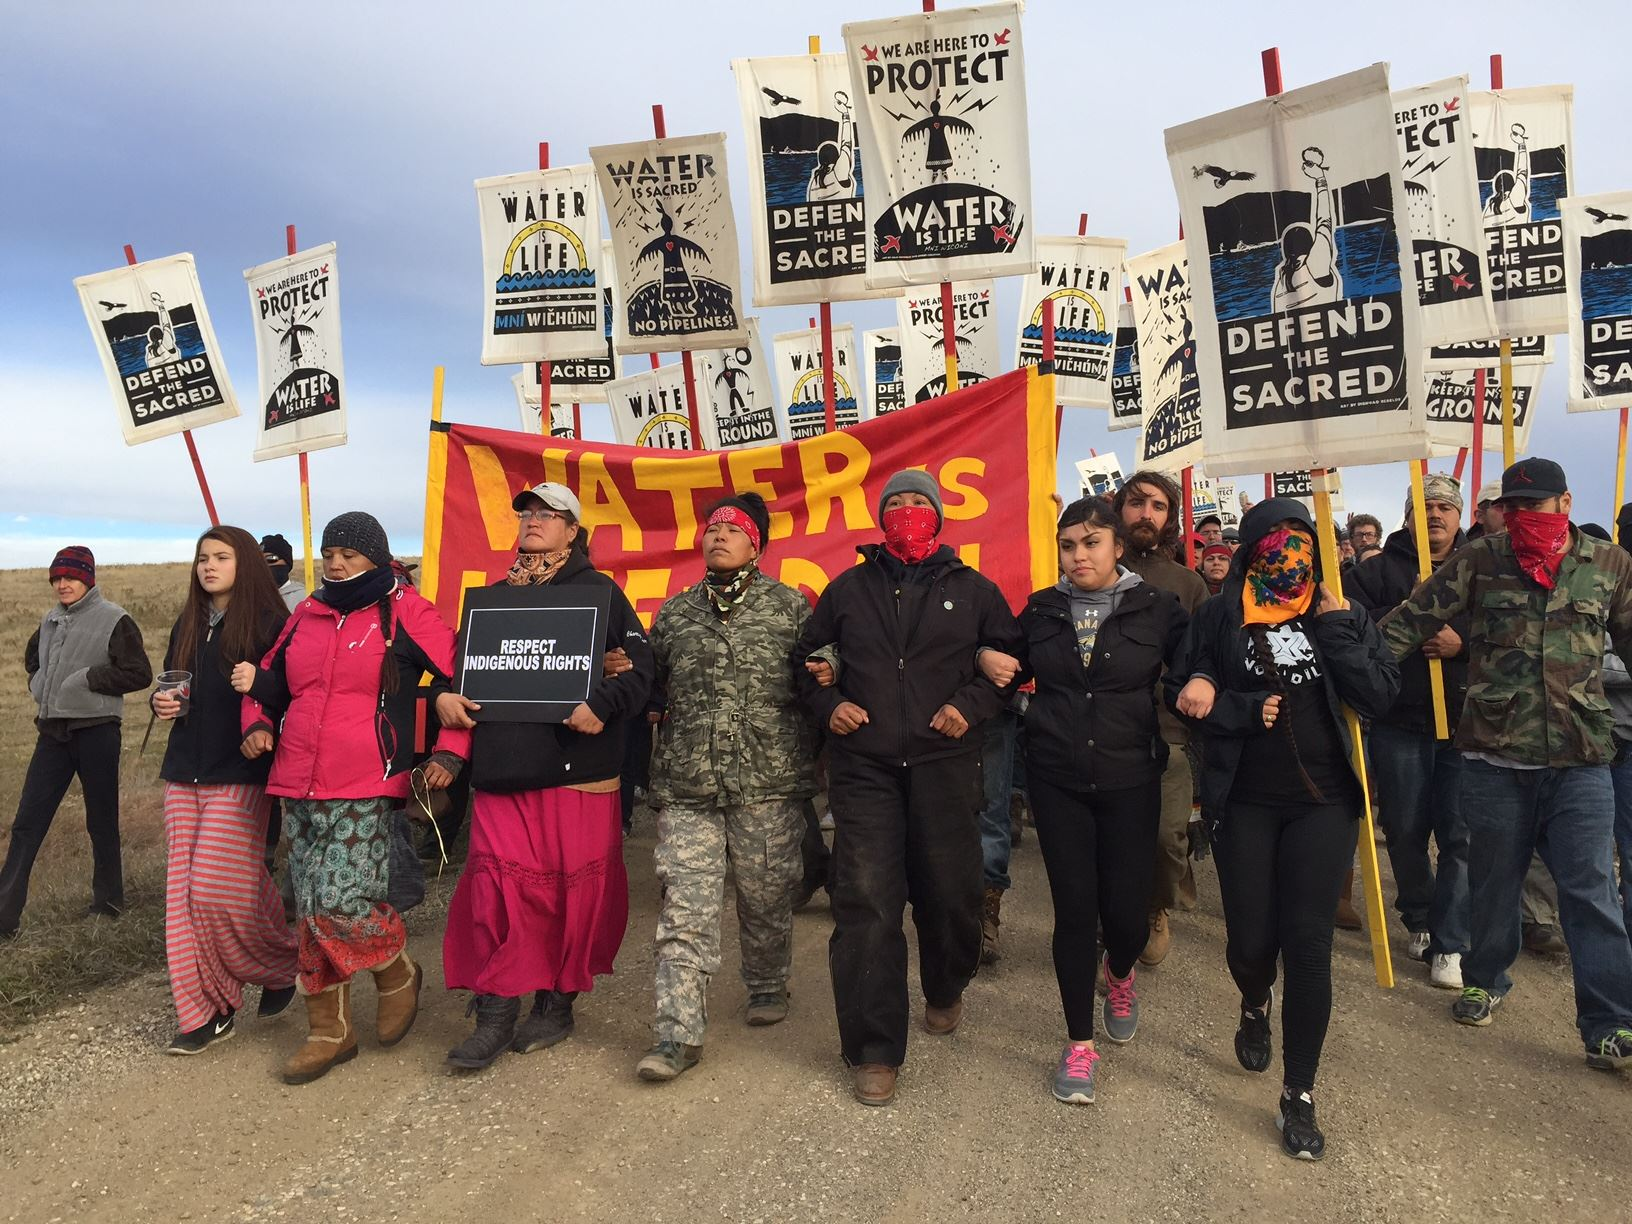 Democracy Now: Standing Rock Sioux Tribe chairman was strip-searched for resisting Dakota Access Pipeline